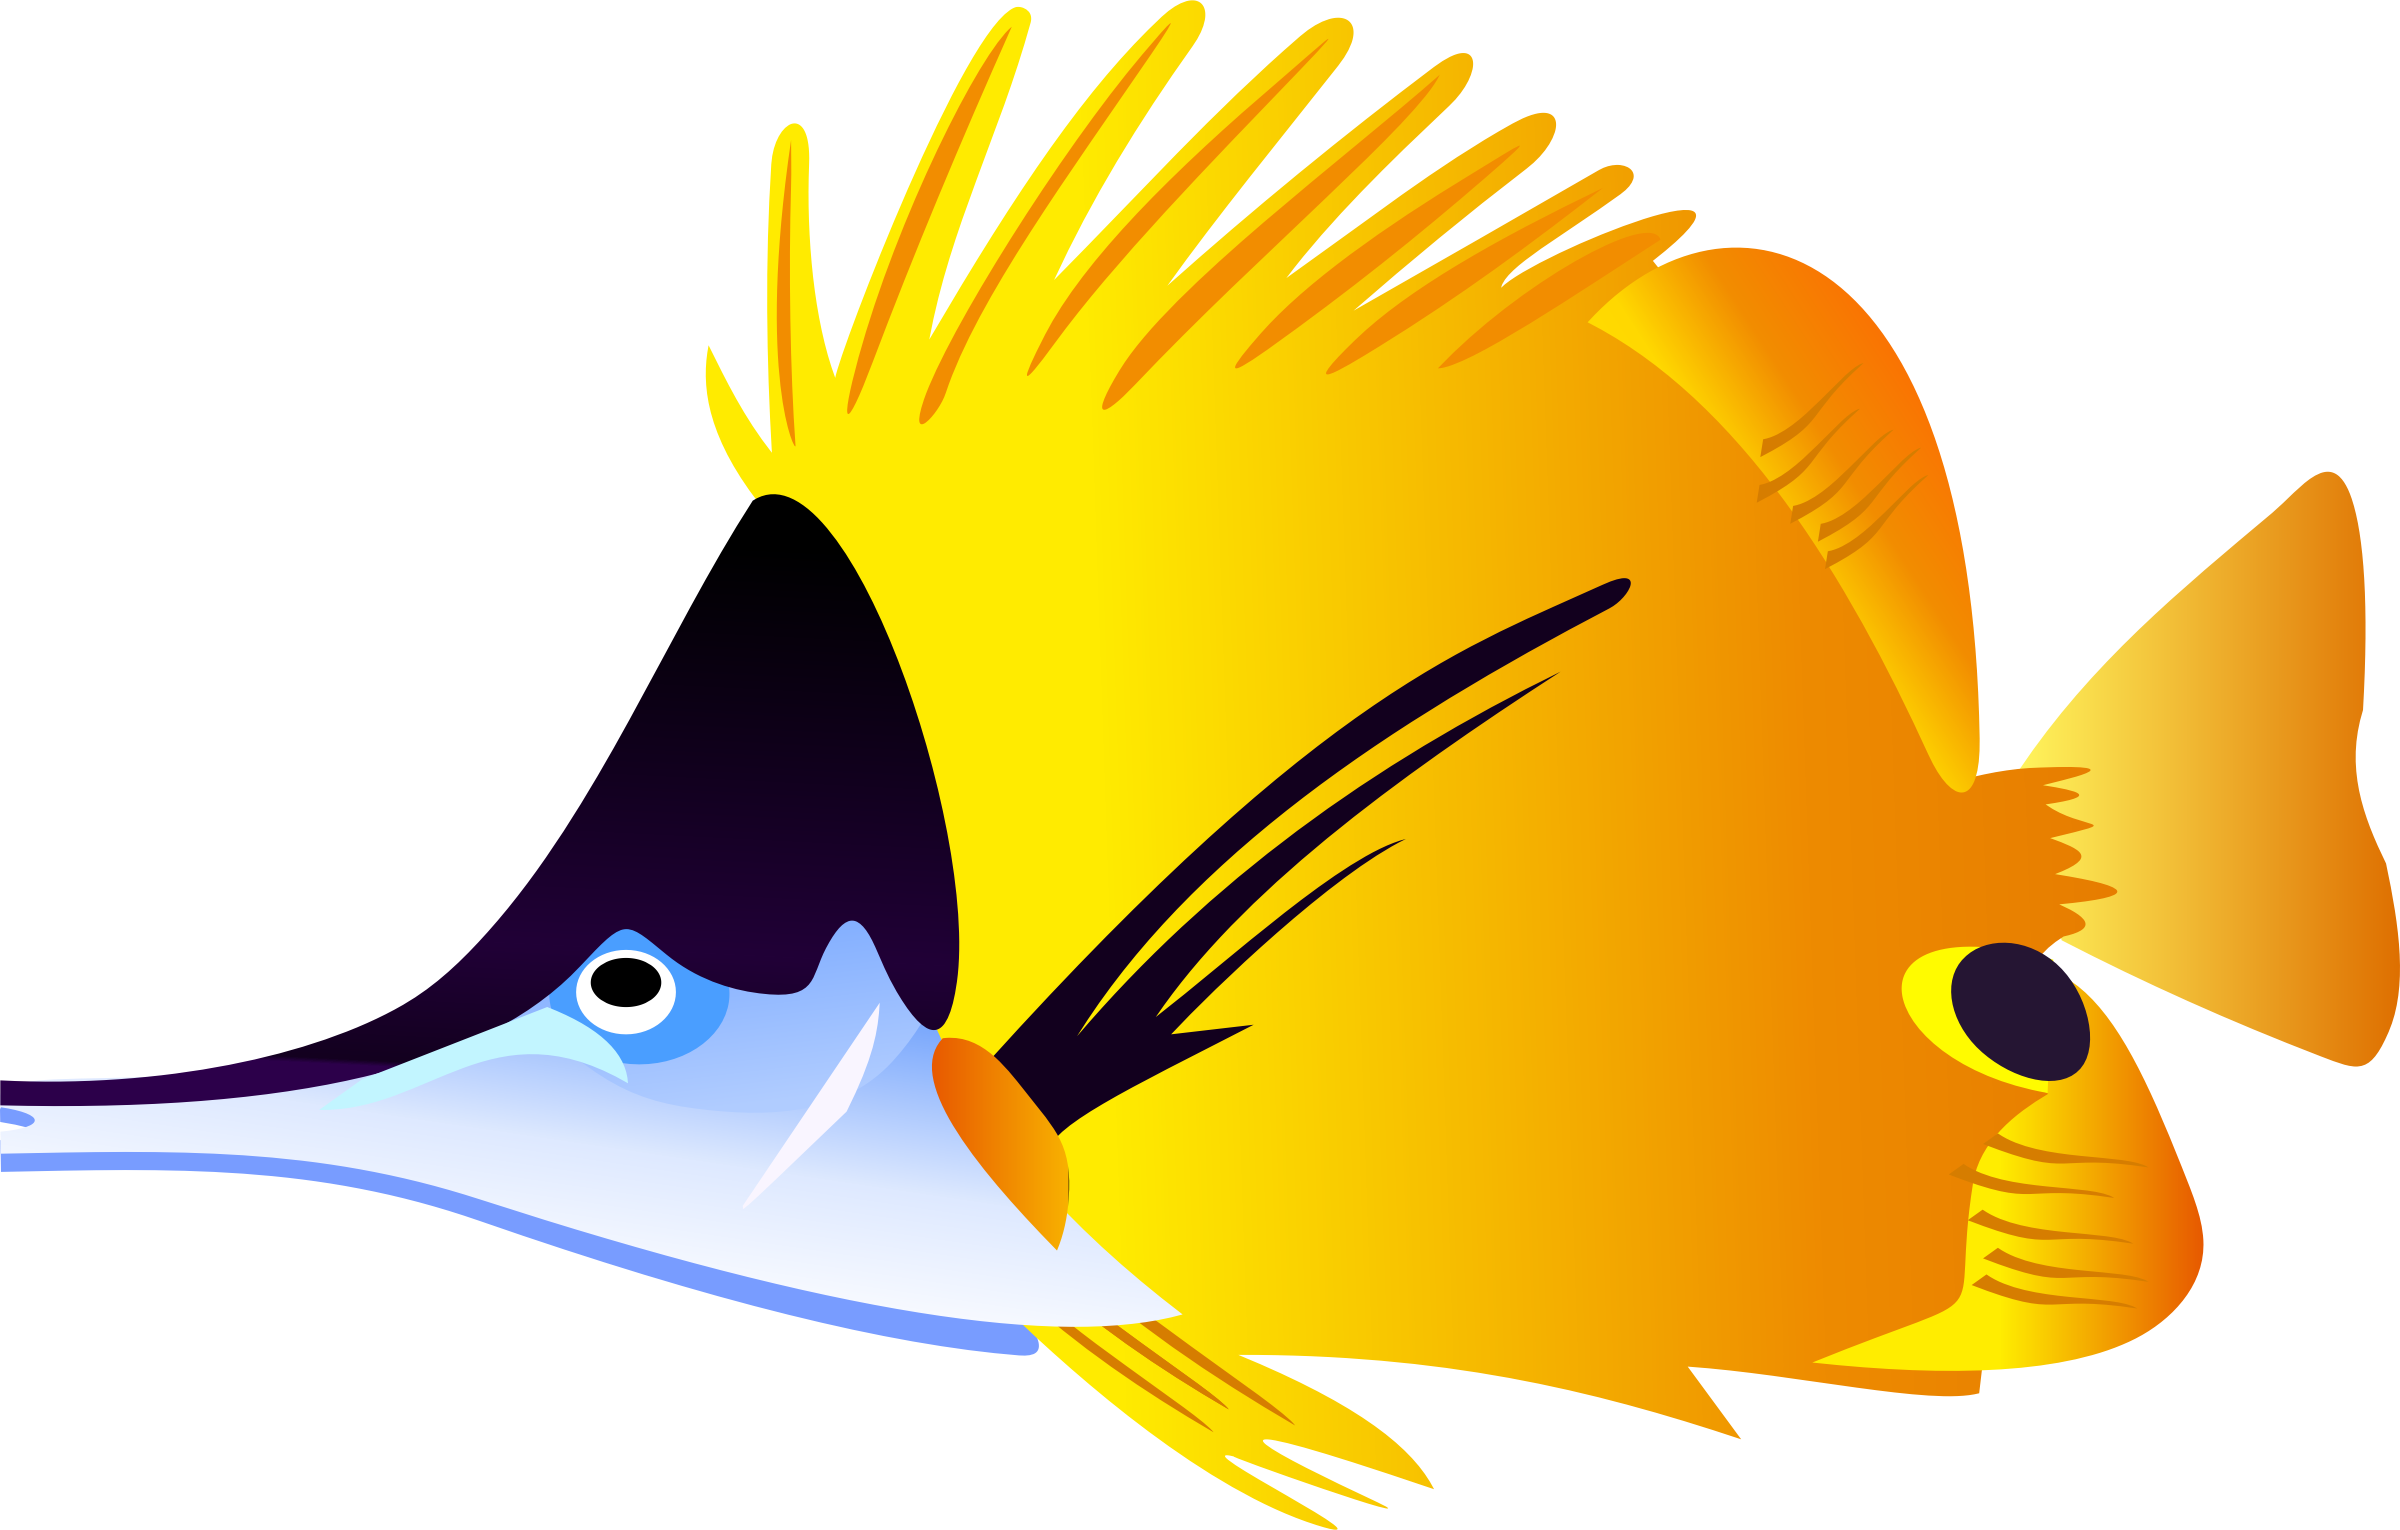 Cooked fish clipart jpg royalty free Saltwater Fish Clipart at GetDrawings.com | Free for personal use ... jpg royalty free